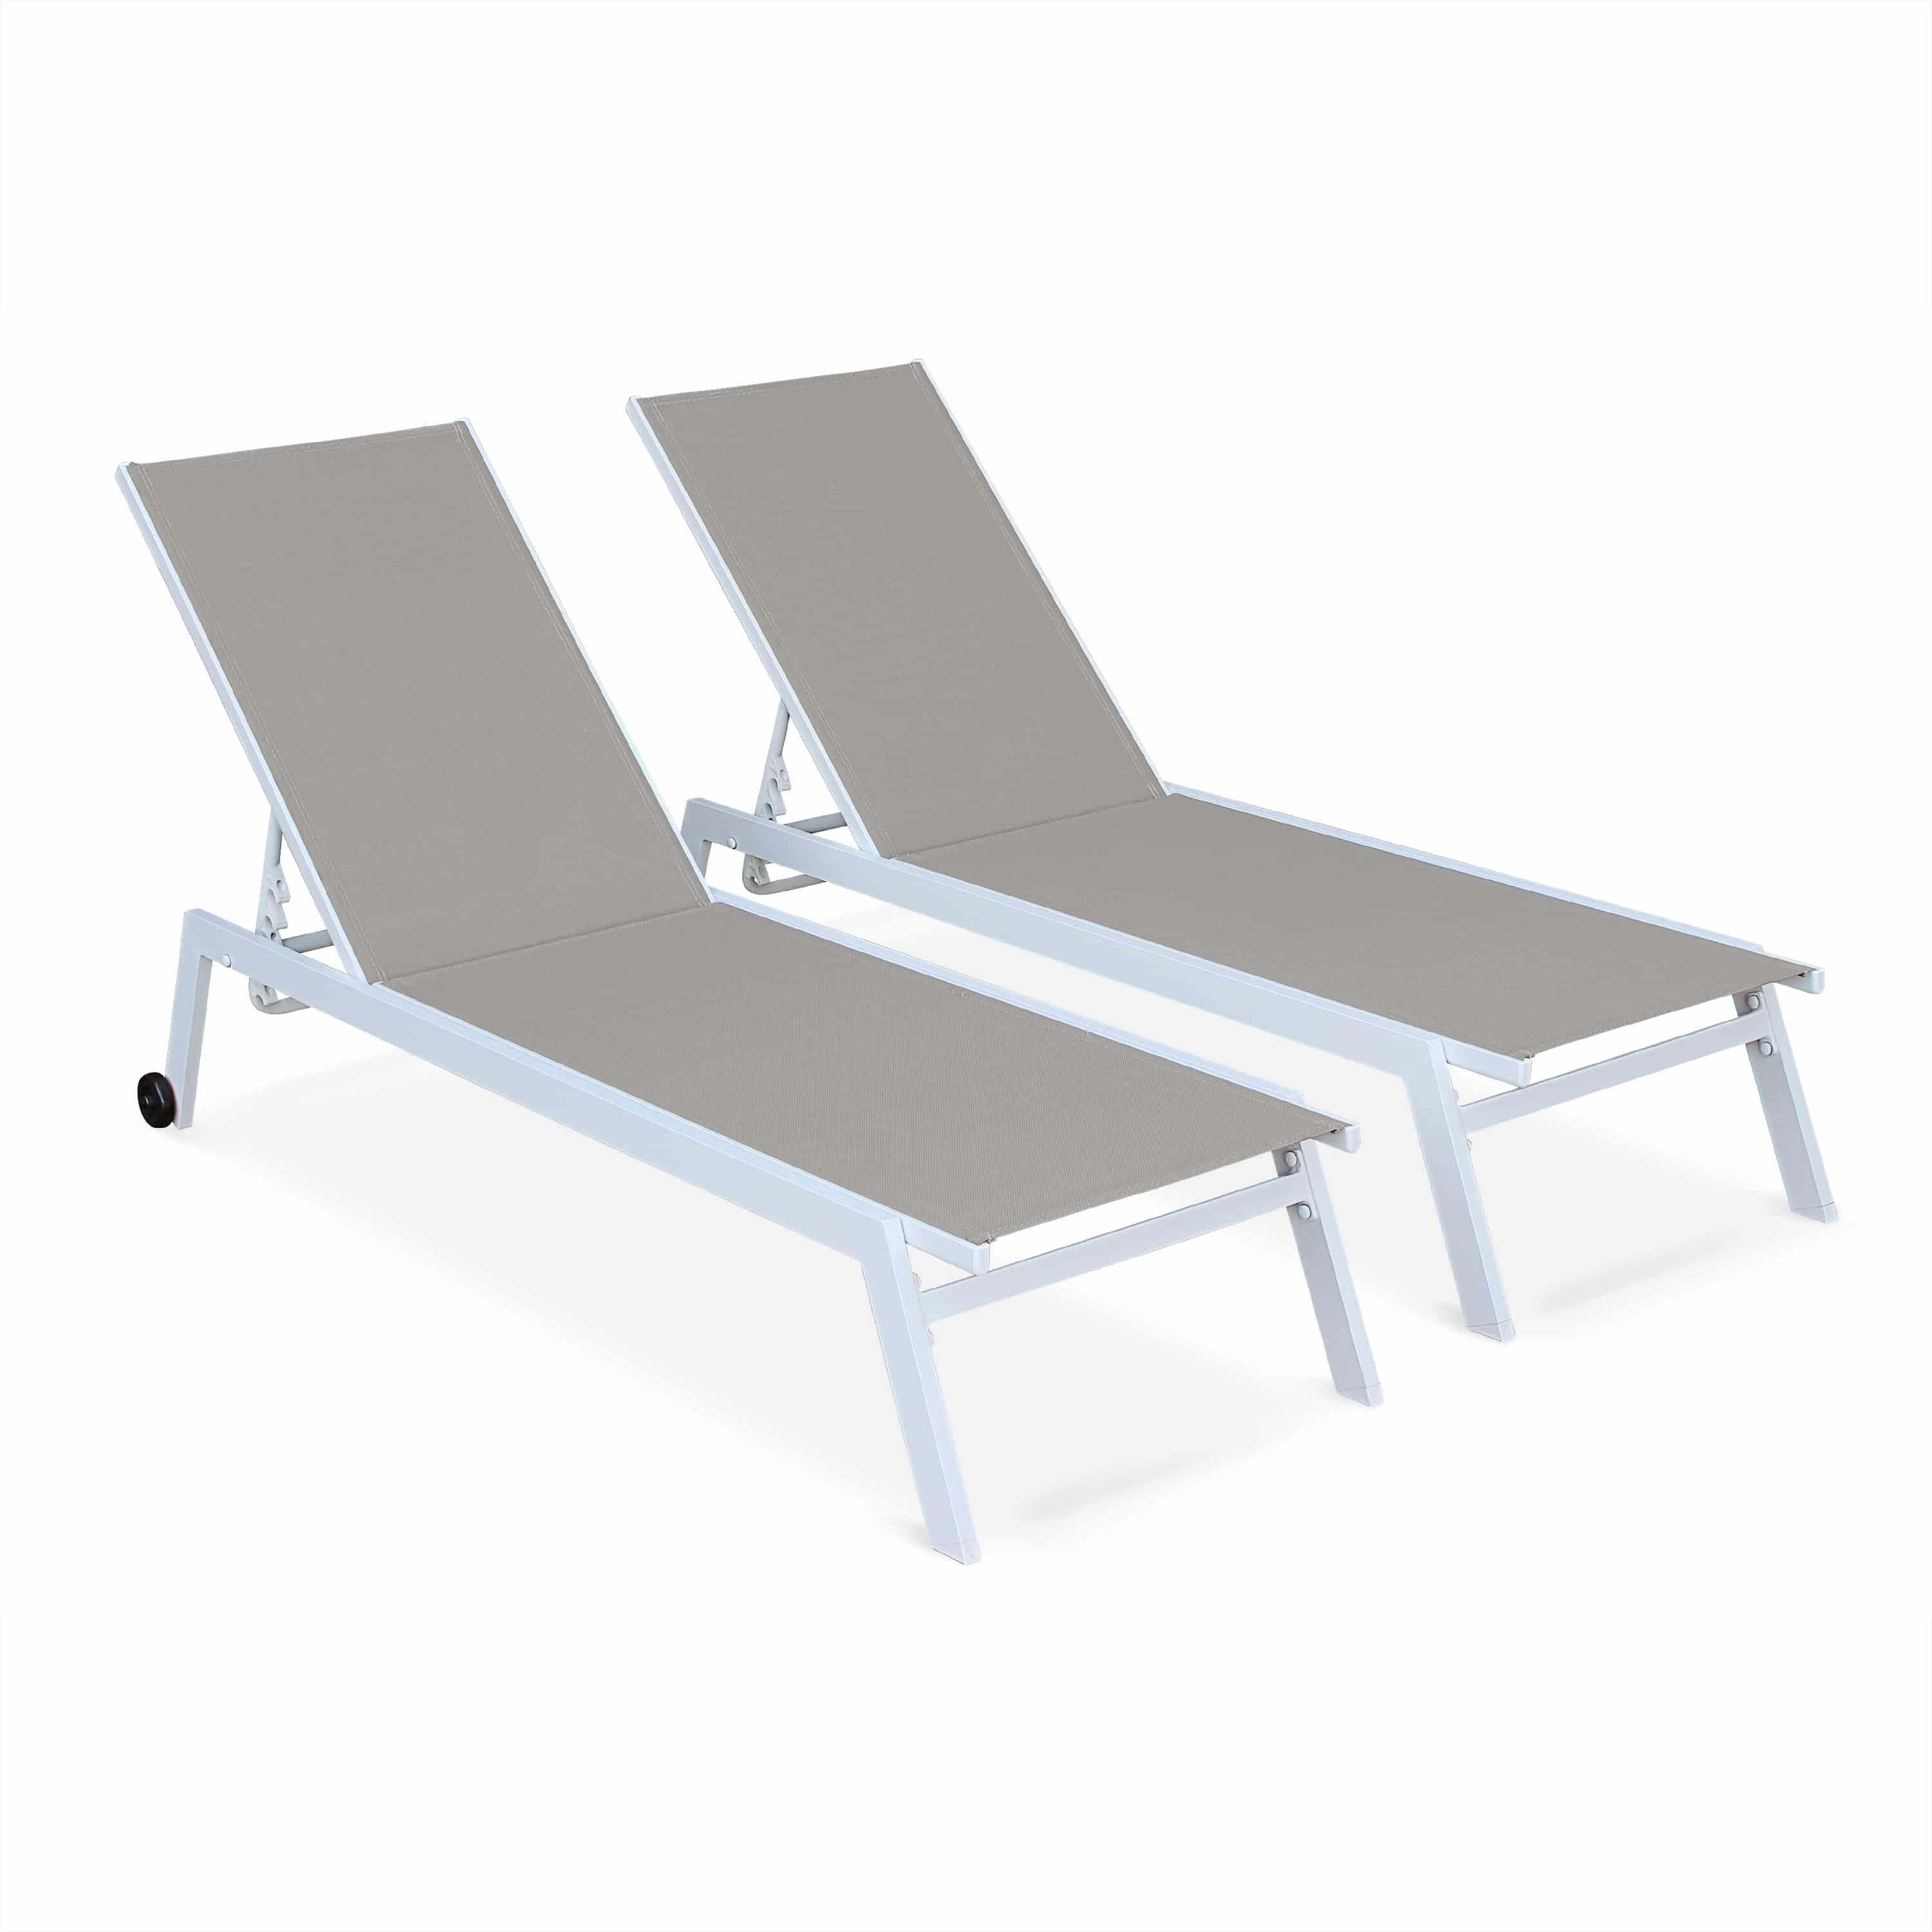 Set of 2x sun loungers aluminium stackable ELSA White Frame Brown Fabric TXSUNKD